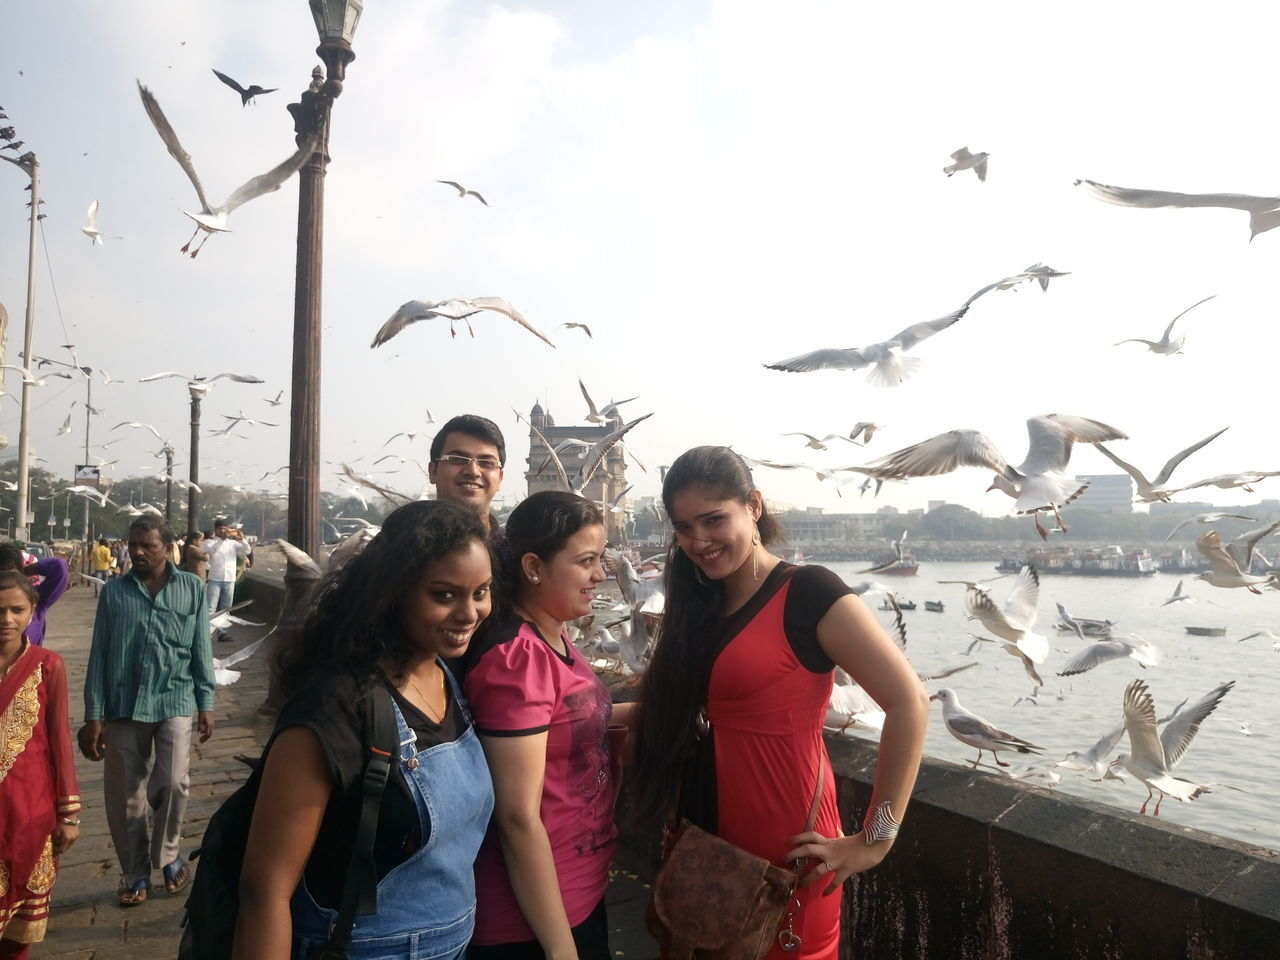 real people, leisure activity, lifestyles, casual clothing, togetherness, large group of animals, animal themes, standing, outdoors, day, portrait, animals in the wild, young women, young adult, looking at camera, bird, flying, boys, childhood, smiling, sky, nature